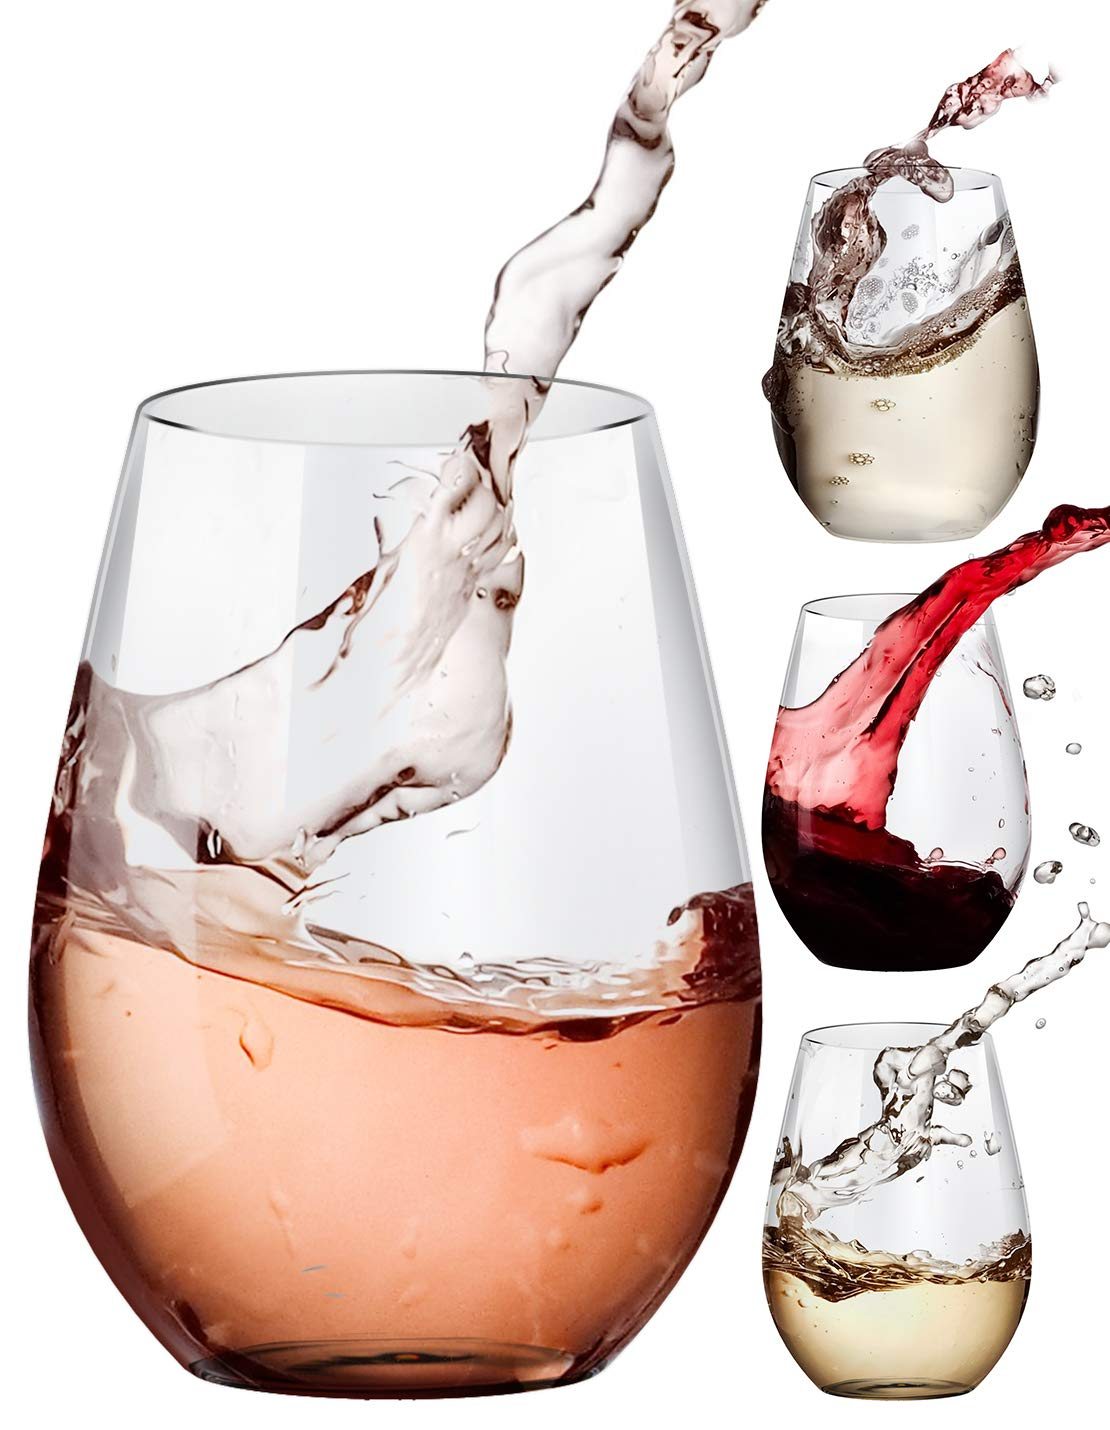 Stemless Wine Glasses, 20-oz Drinking Glasses, Set of 4, Ideal for Red and White Wine, Juice, Kitchen Glassware, Beach, Wedding and Party, Dishwasher-Safe